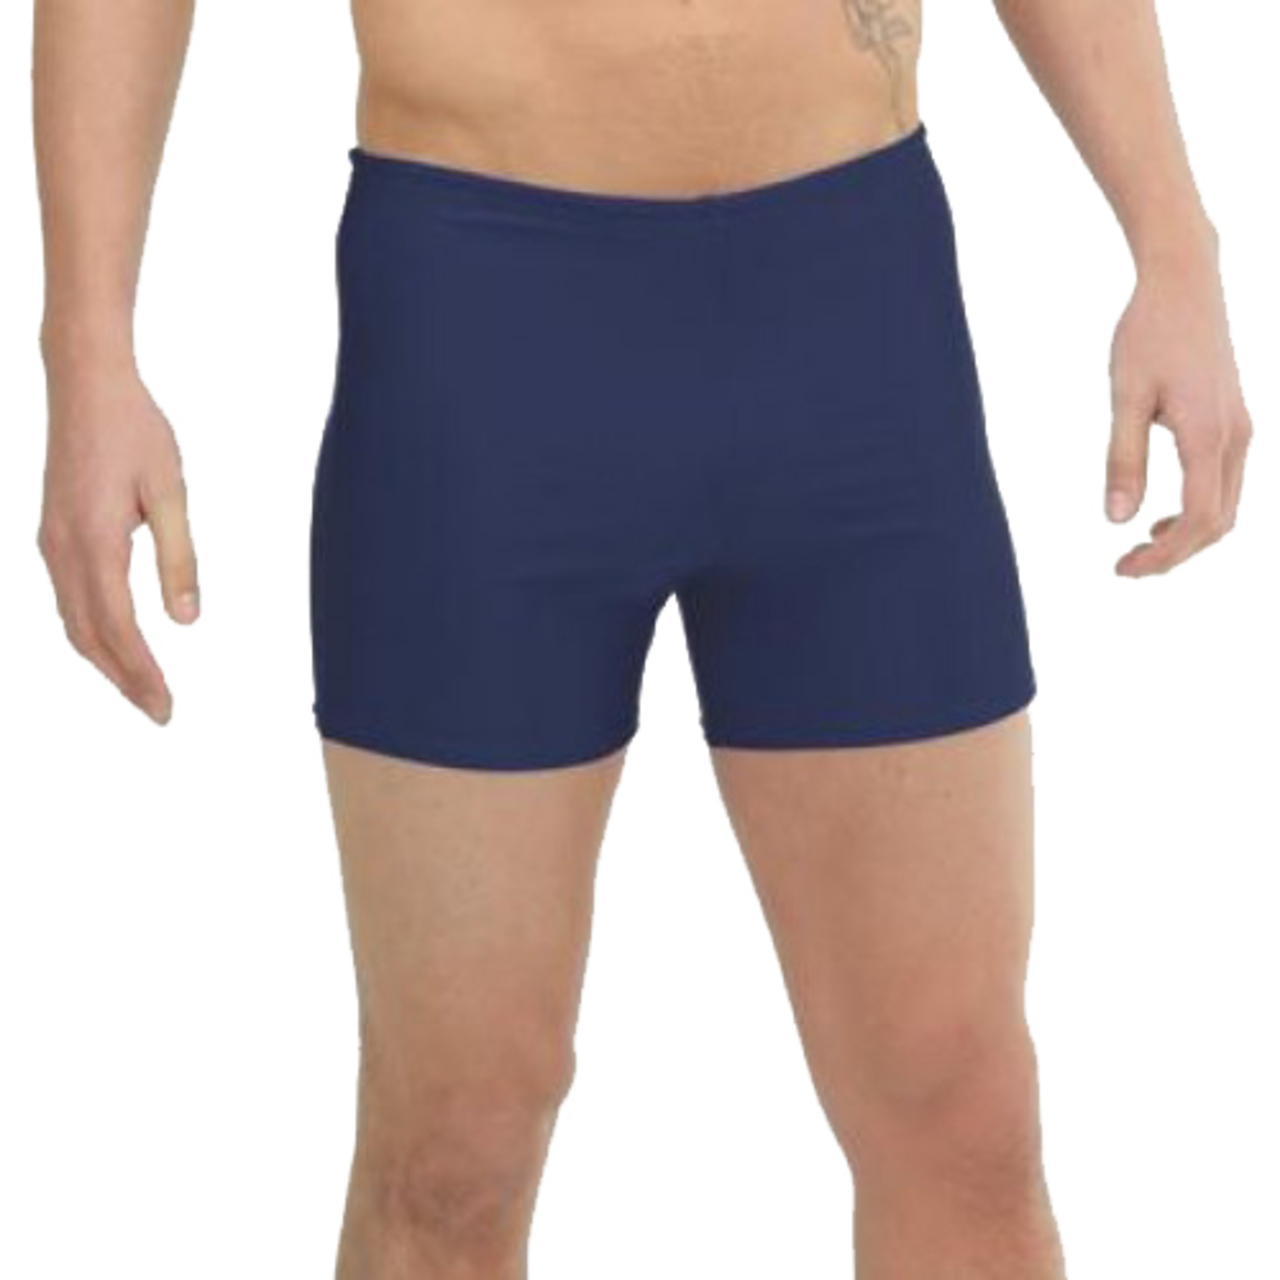 Zika Square Leg Swimming Shorts Plain Regulation School